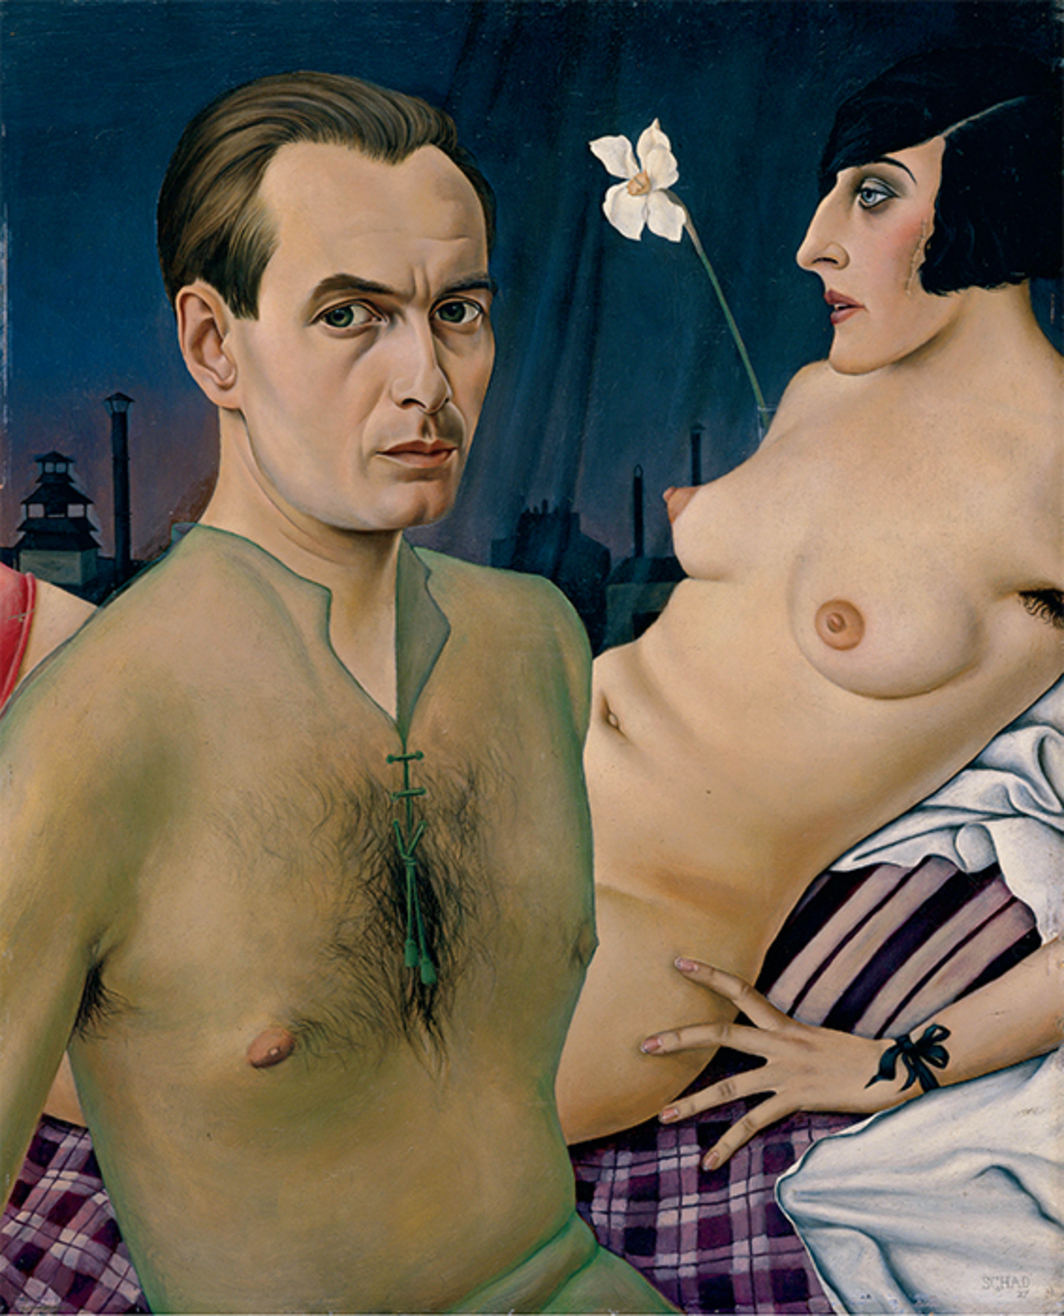 "Christian Schad, Selbstbildnis mit Modell (Self-Portrait with Model), 1927, oil on wood, 30 × 24 1/4"". © Christian Schad Stiftung Aschaffenburg/ Artists Rights Society (ARS), New York/VG Bild-Kunst, Bonn."